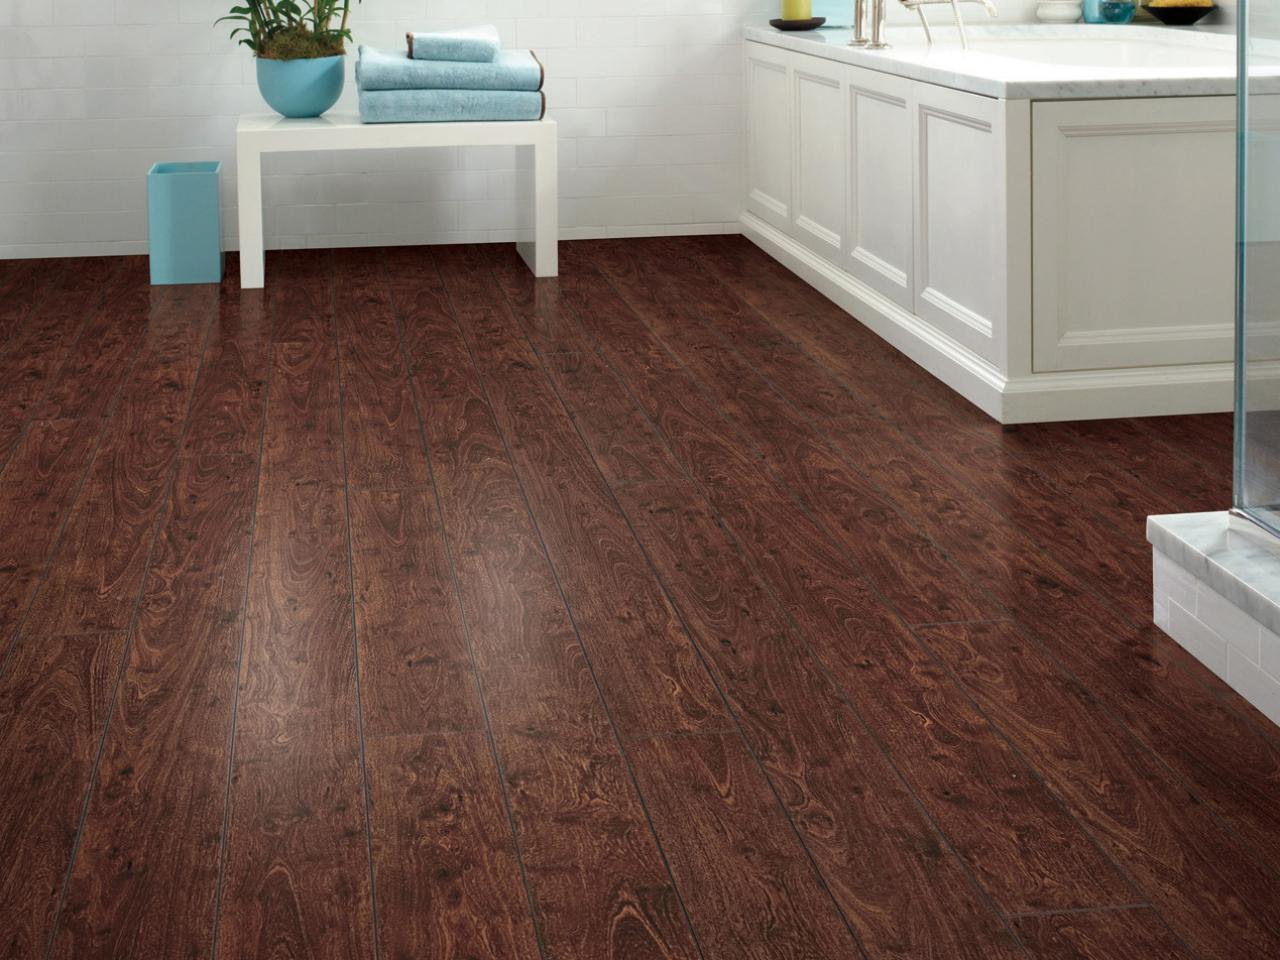 Laminate Wood Flooring Designs : Laminate flooring for basements hgtv